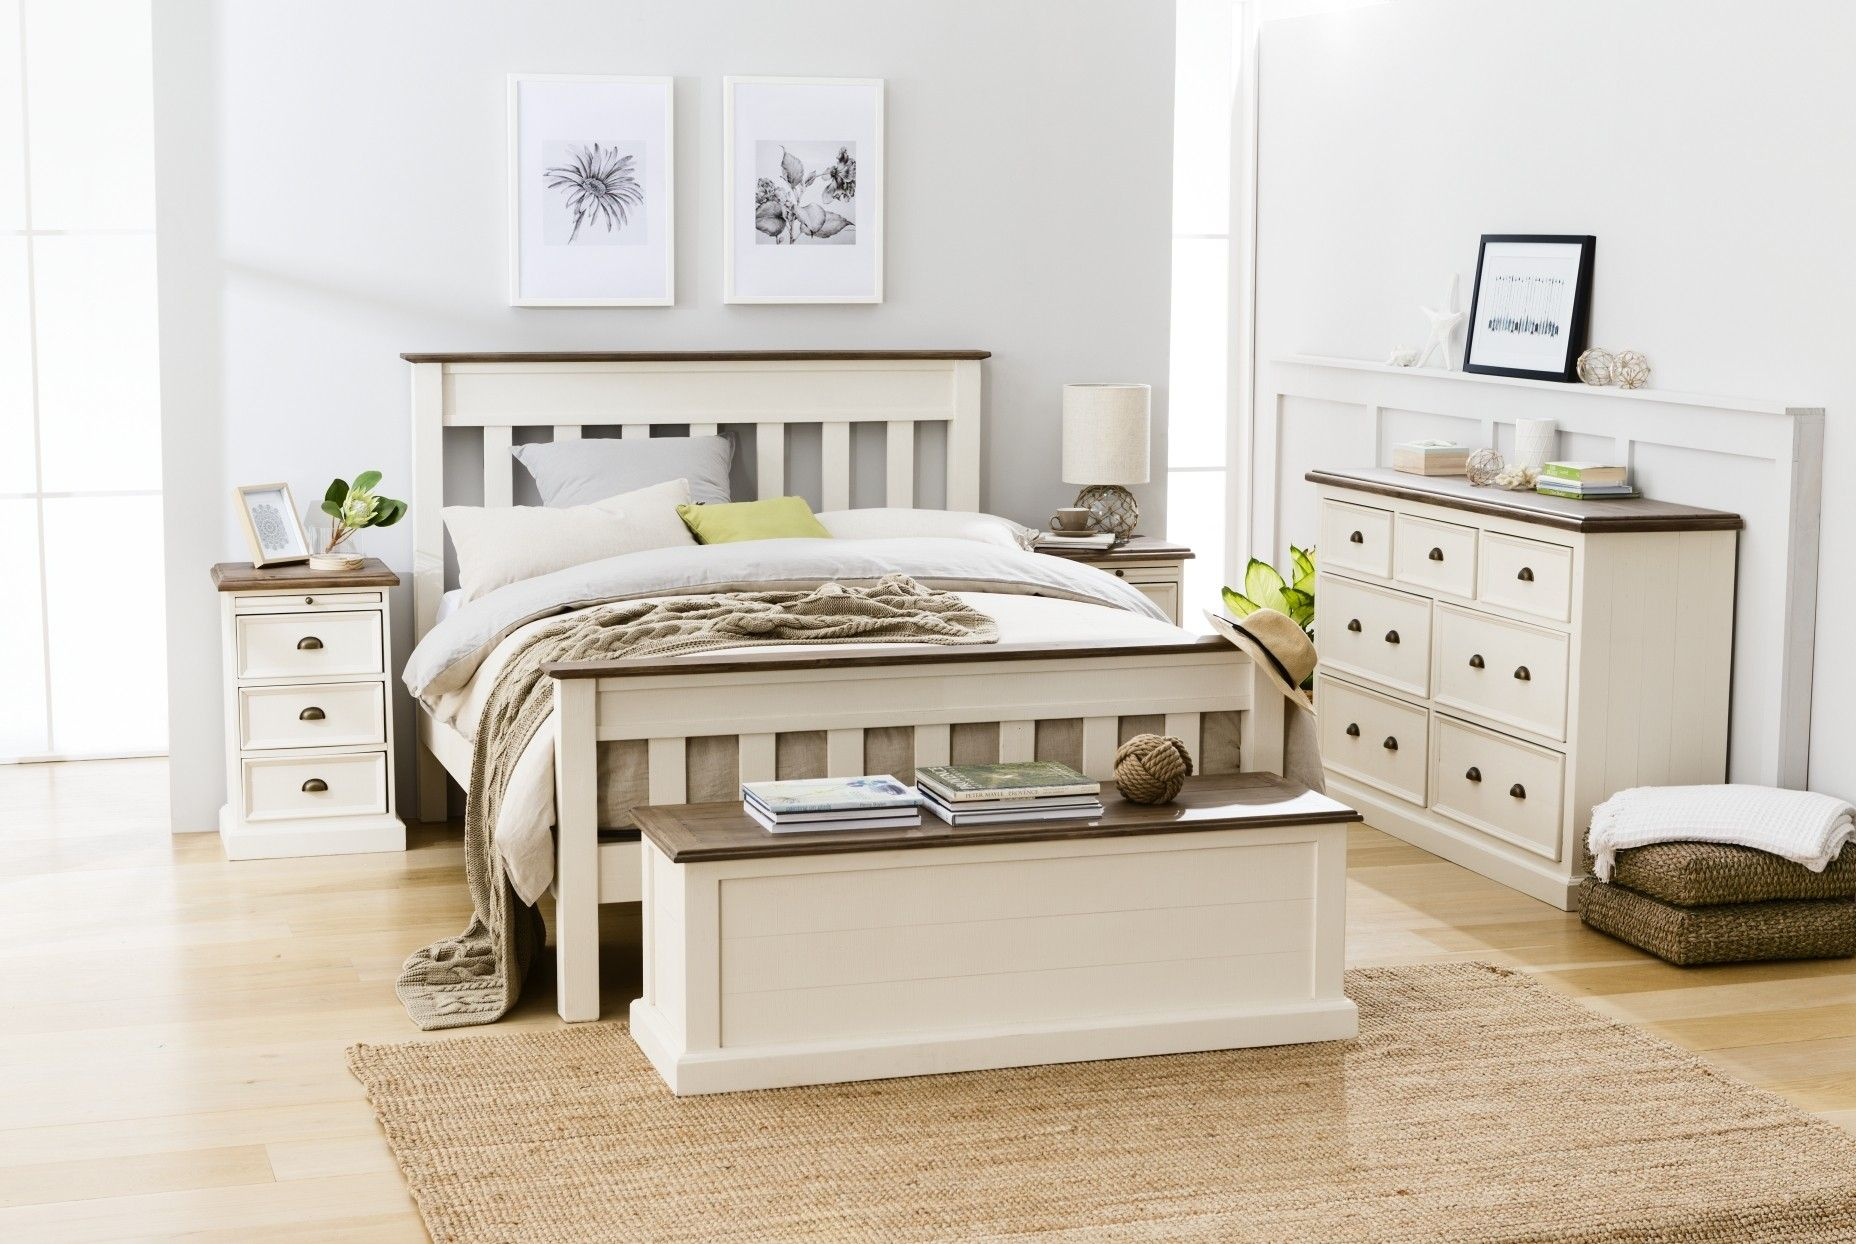 Cornwall Bedroom Furniture Current bedroom set we would want to